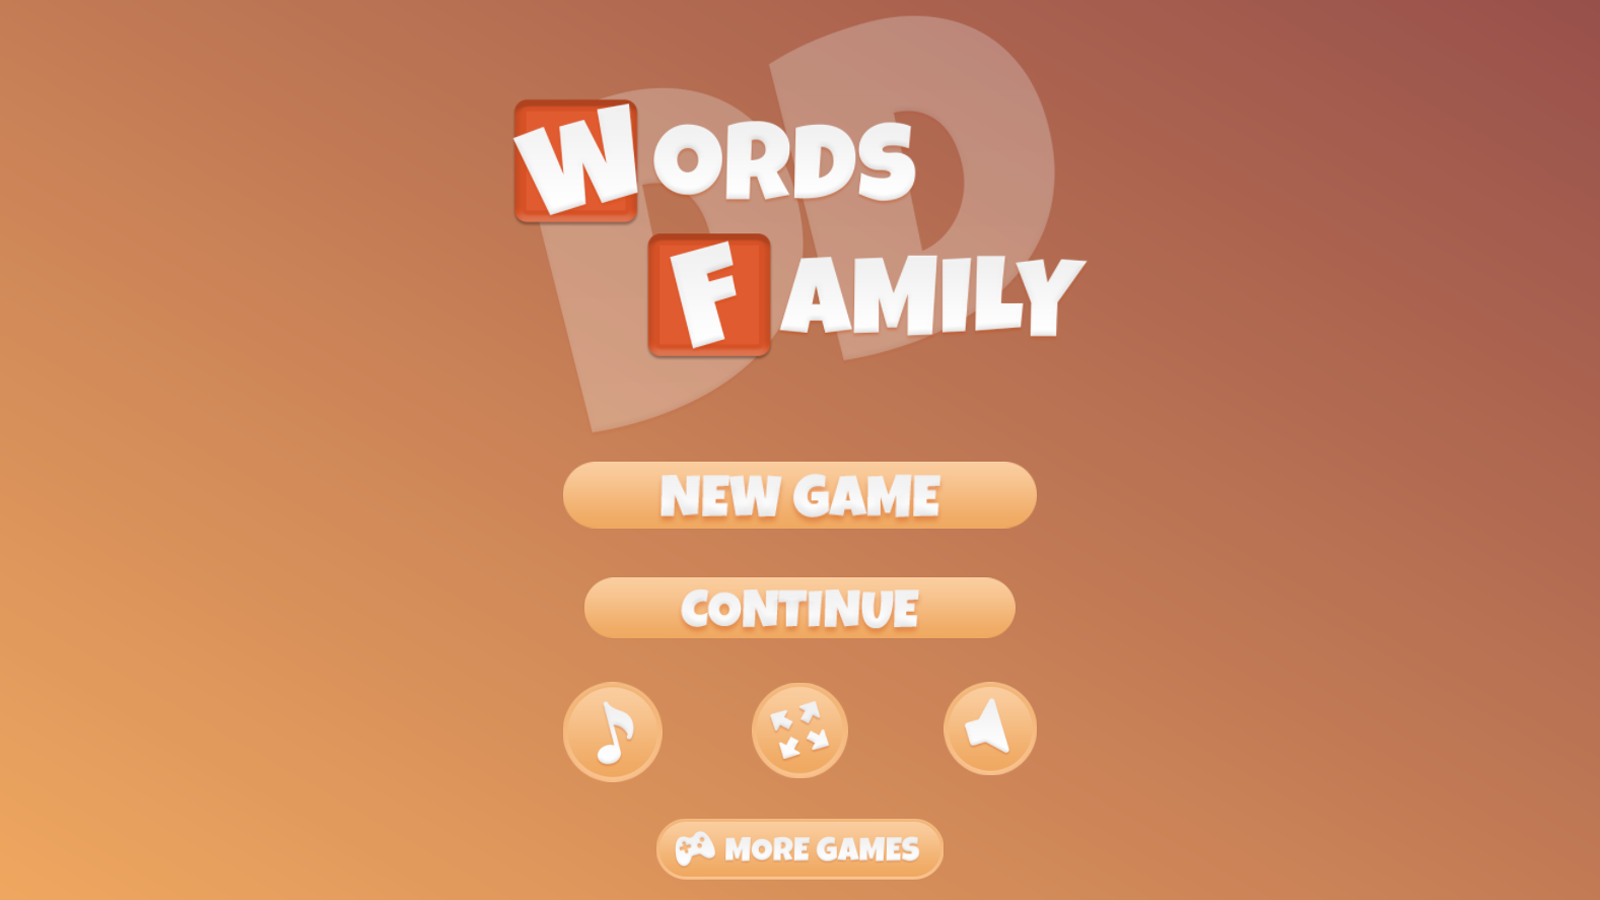 Words Family Game Welcome Screenshot.